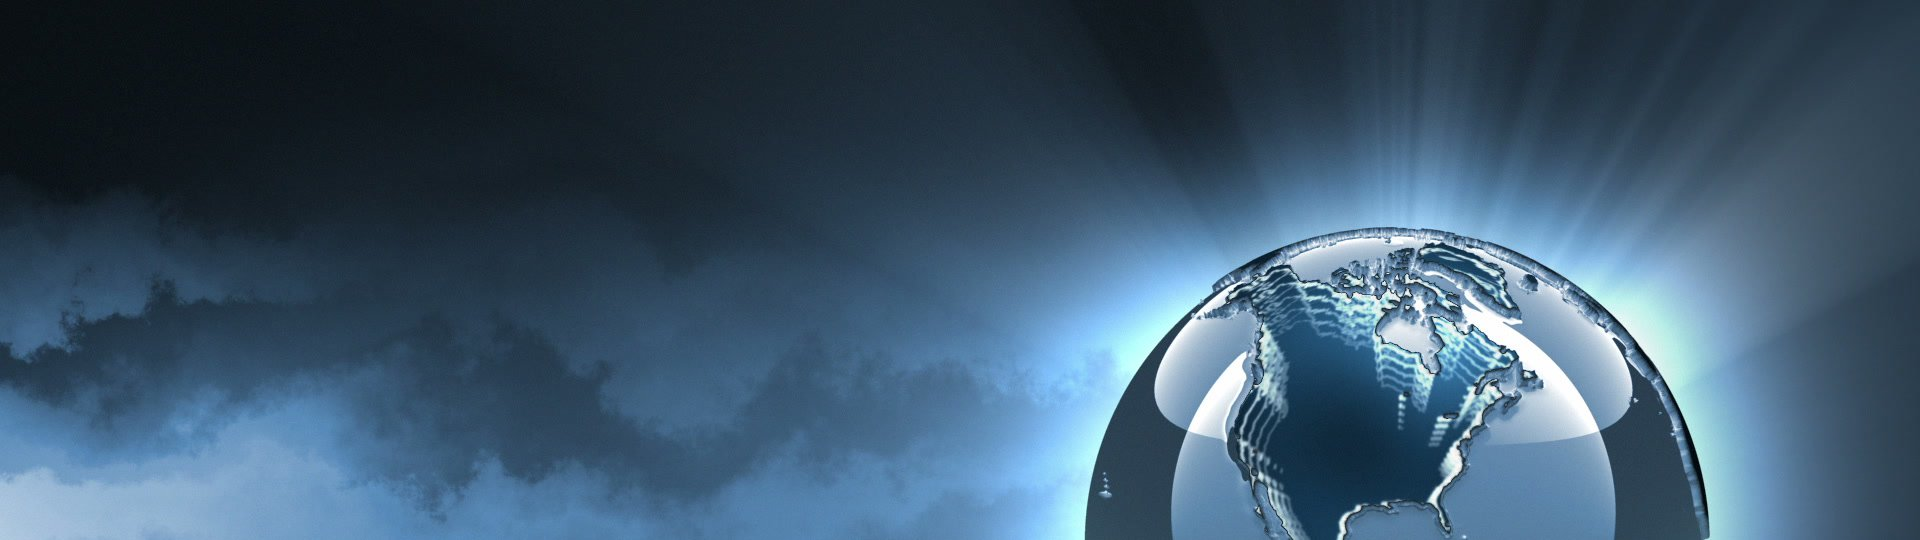 Silver globe at night | 3d rotating futuristic globe on animated night clouds background. Seamless loop. - ID:15331